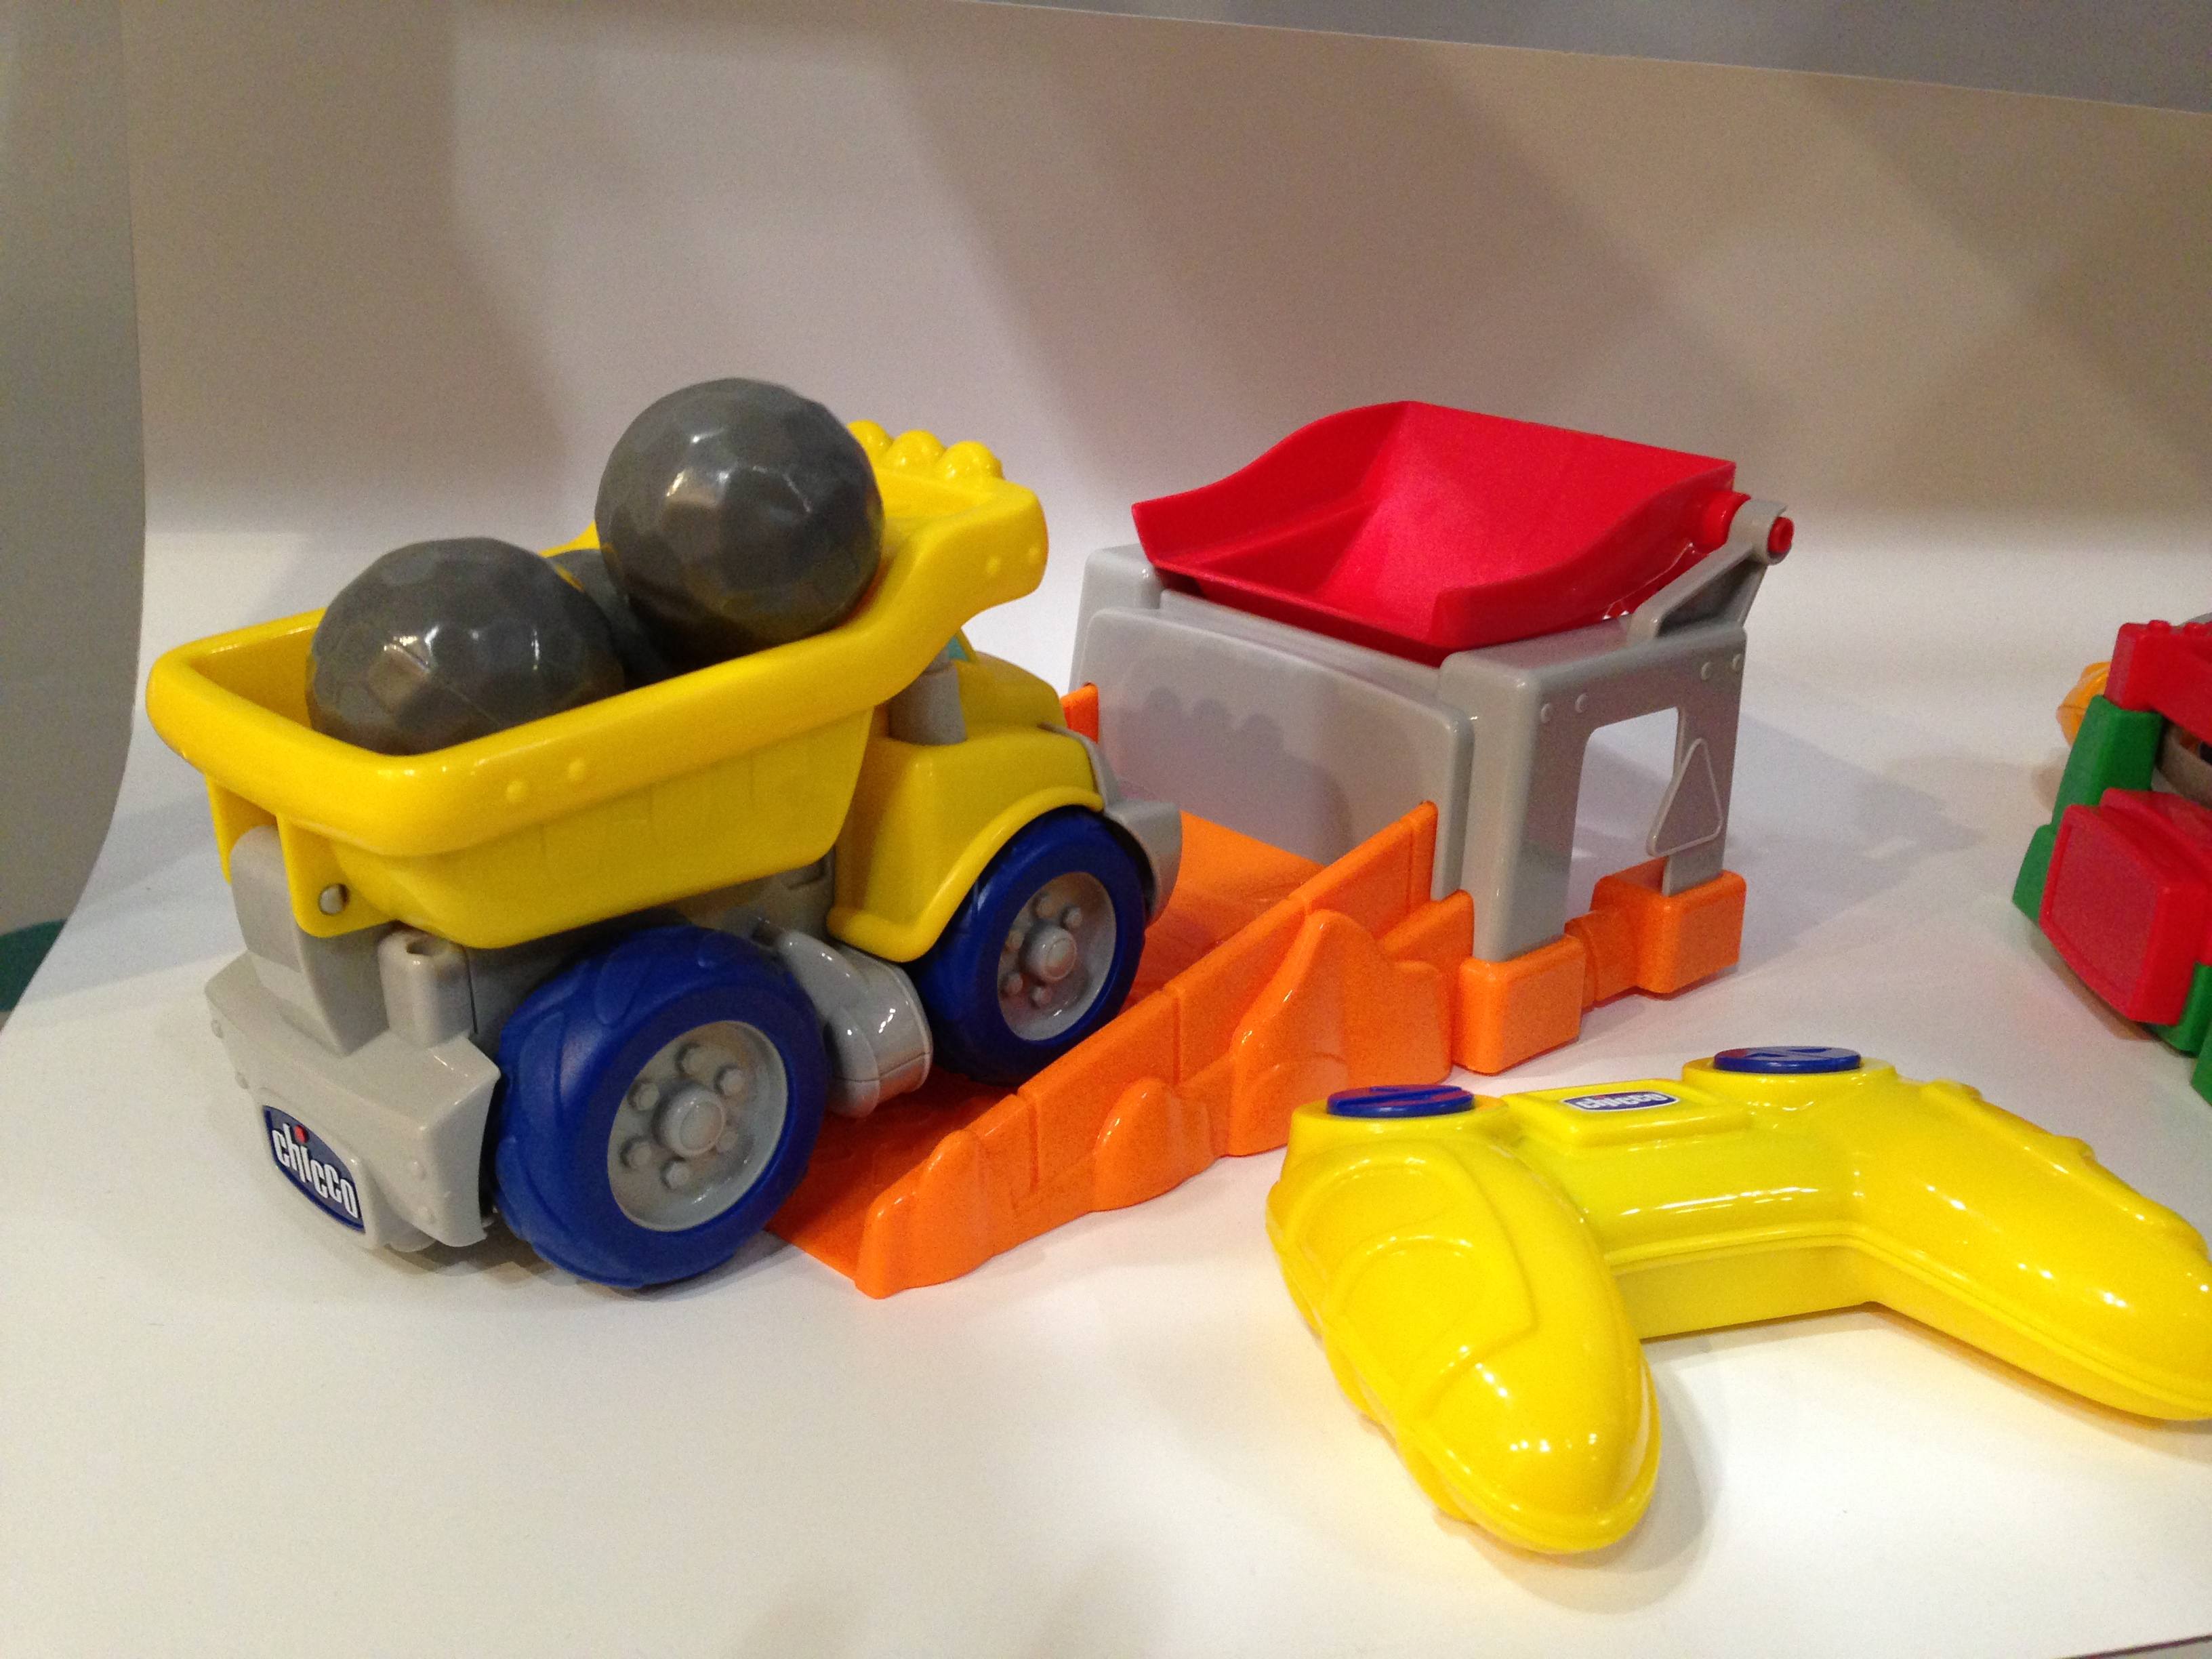 Check out the tactile detail on Chicco's new remote-controlled dump truck!